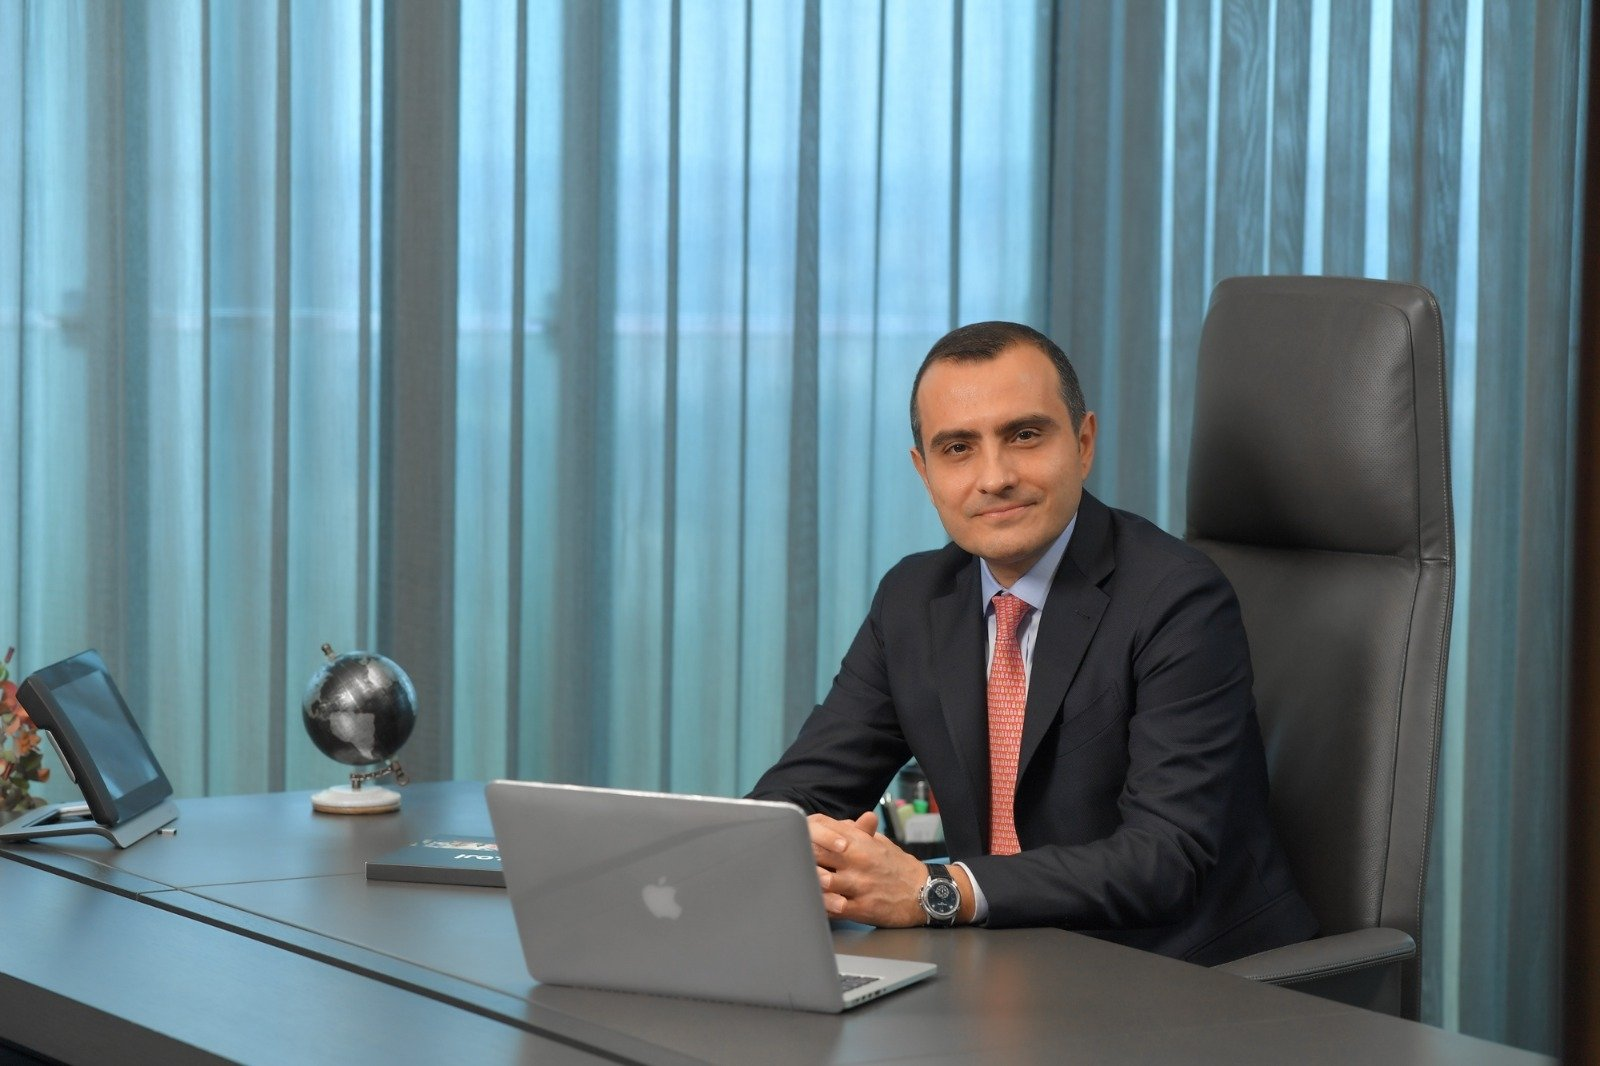 DgPays founder and CEO Serkan Ömerneyoğlu poses in the photo provided on March 22, 2021. (DpPays Photo via AA)